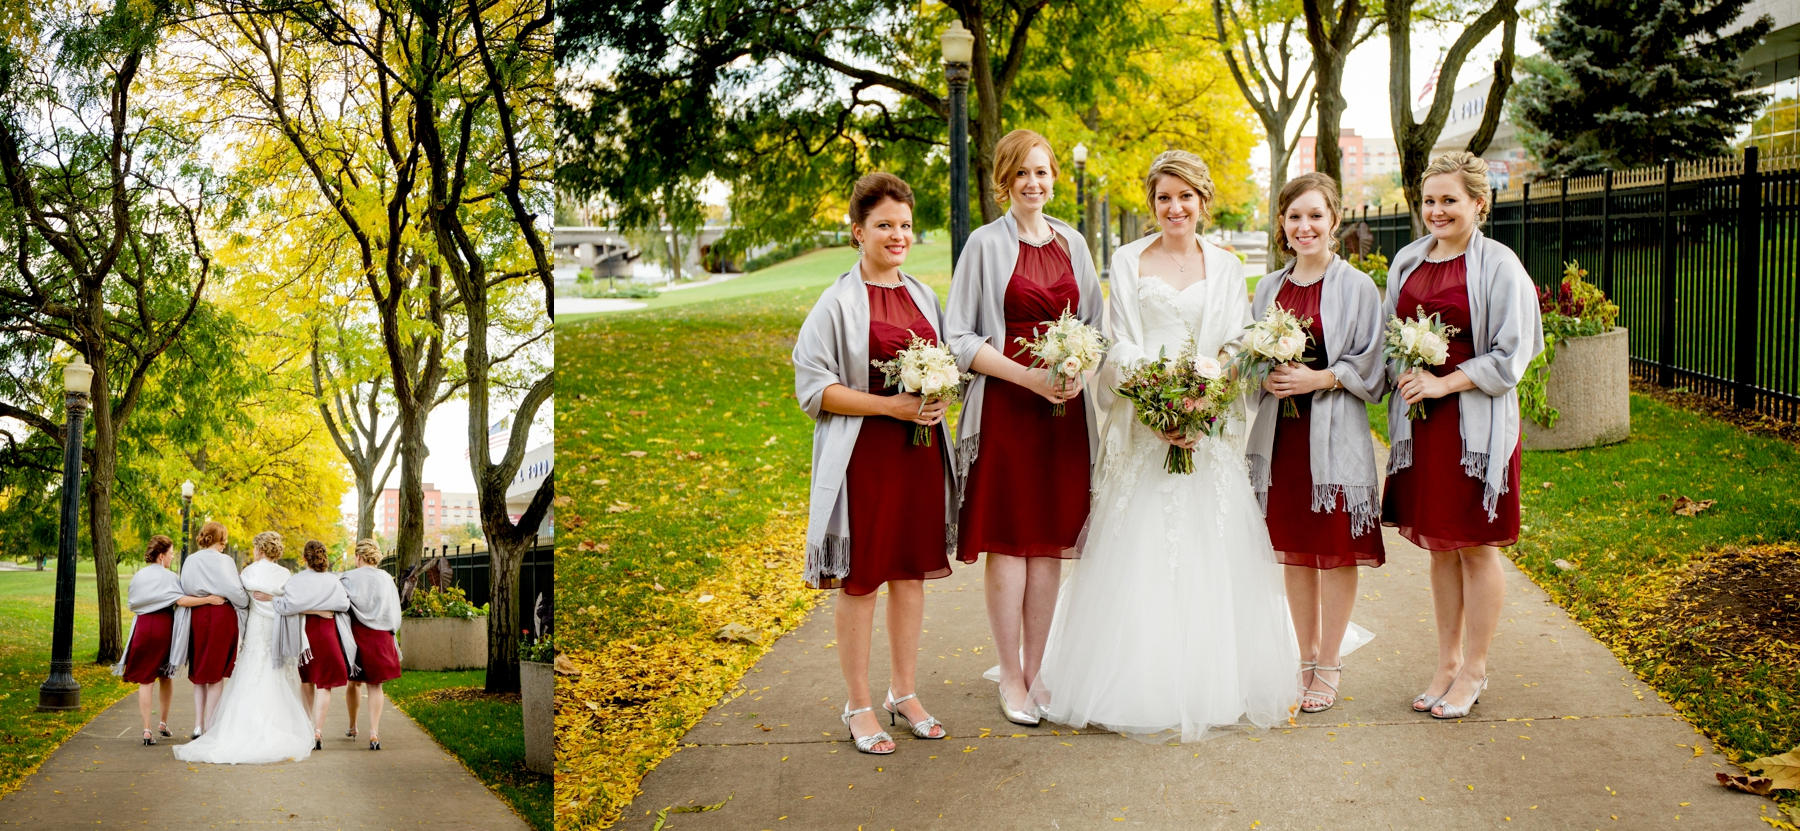 Brandon_Shafer_Photography_Kristen_Corey_Downtown_Grand_Rapids_Fall_Wedding0035.JPG